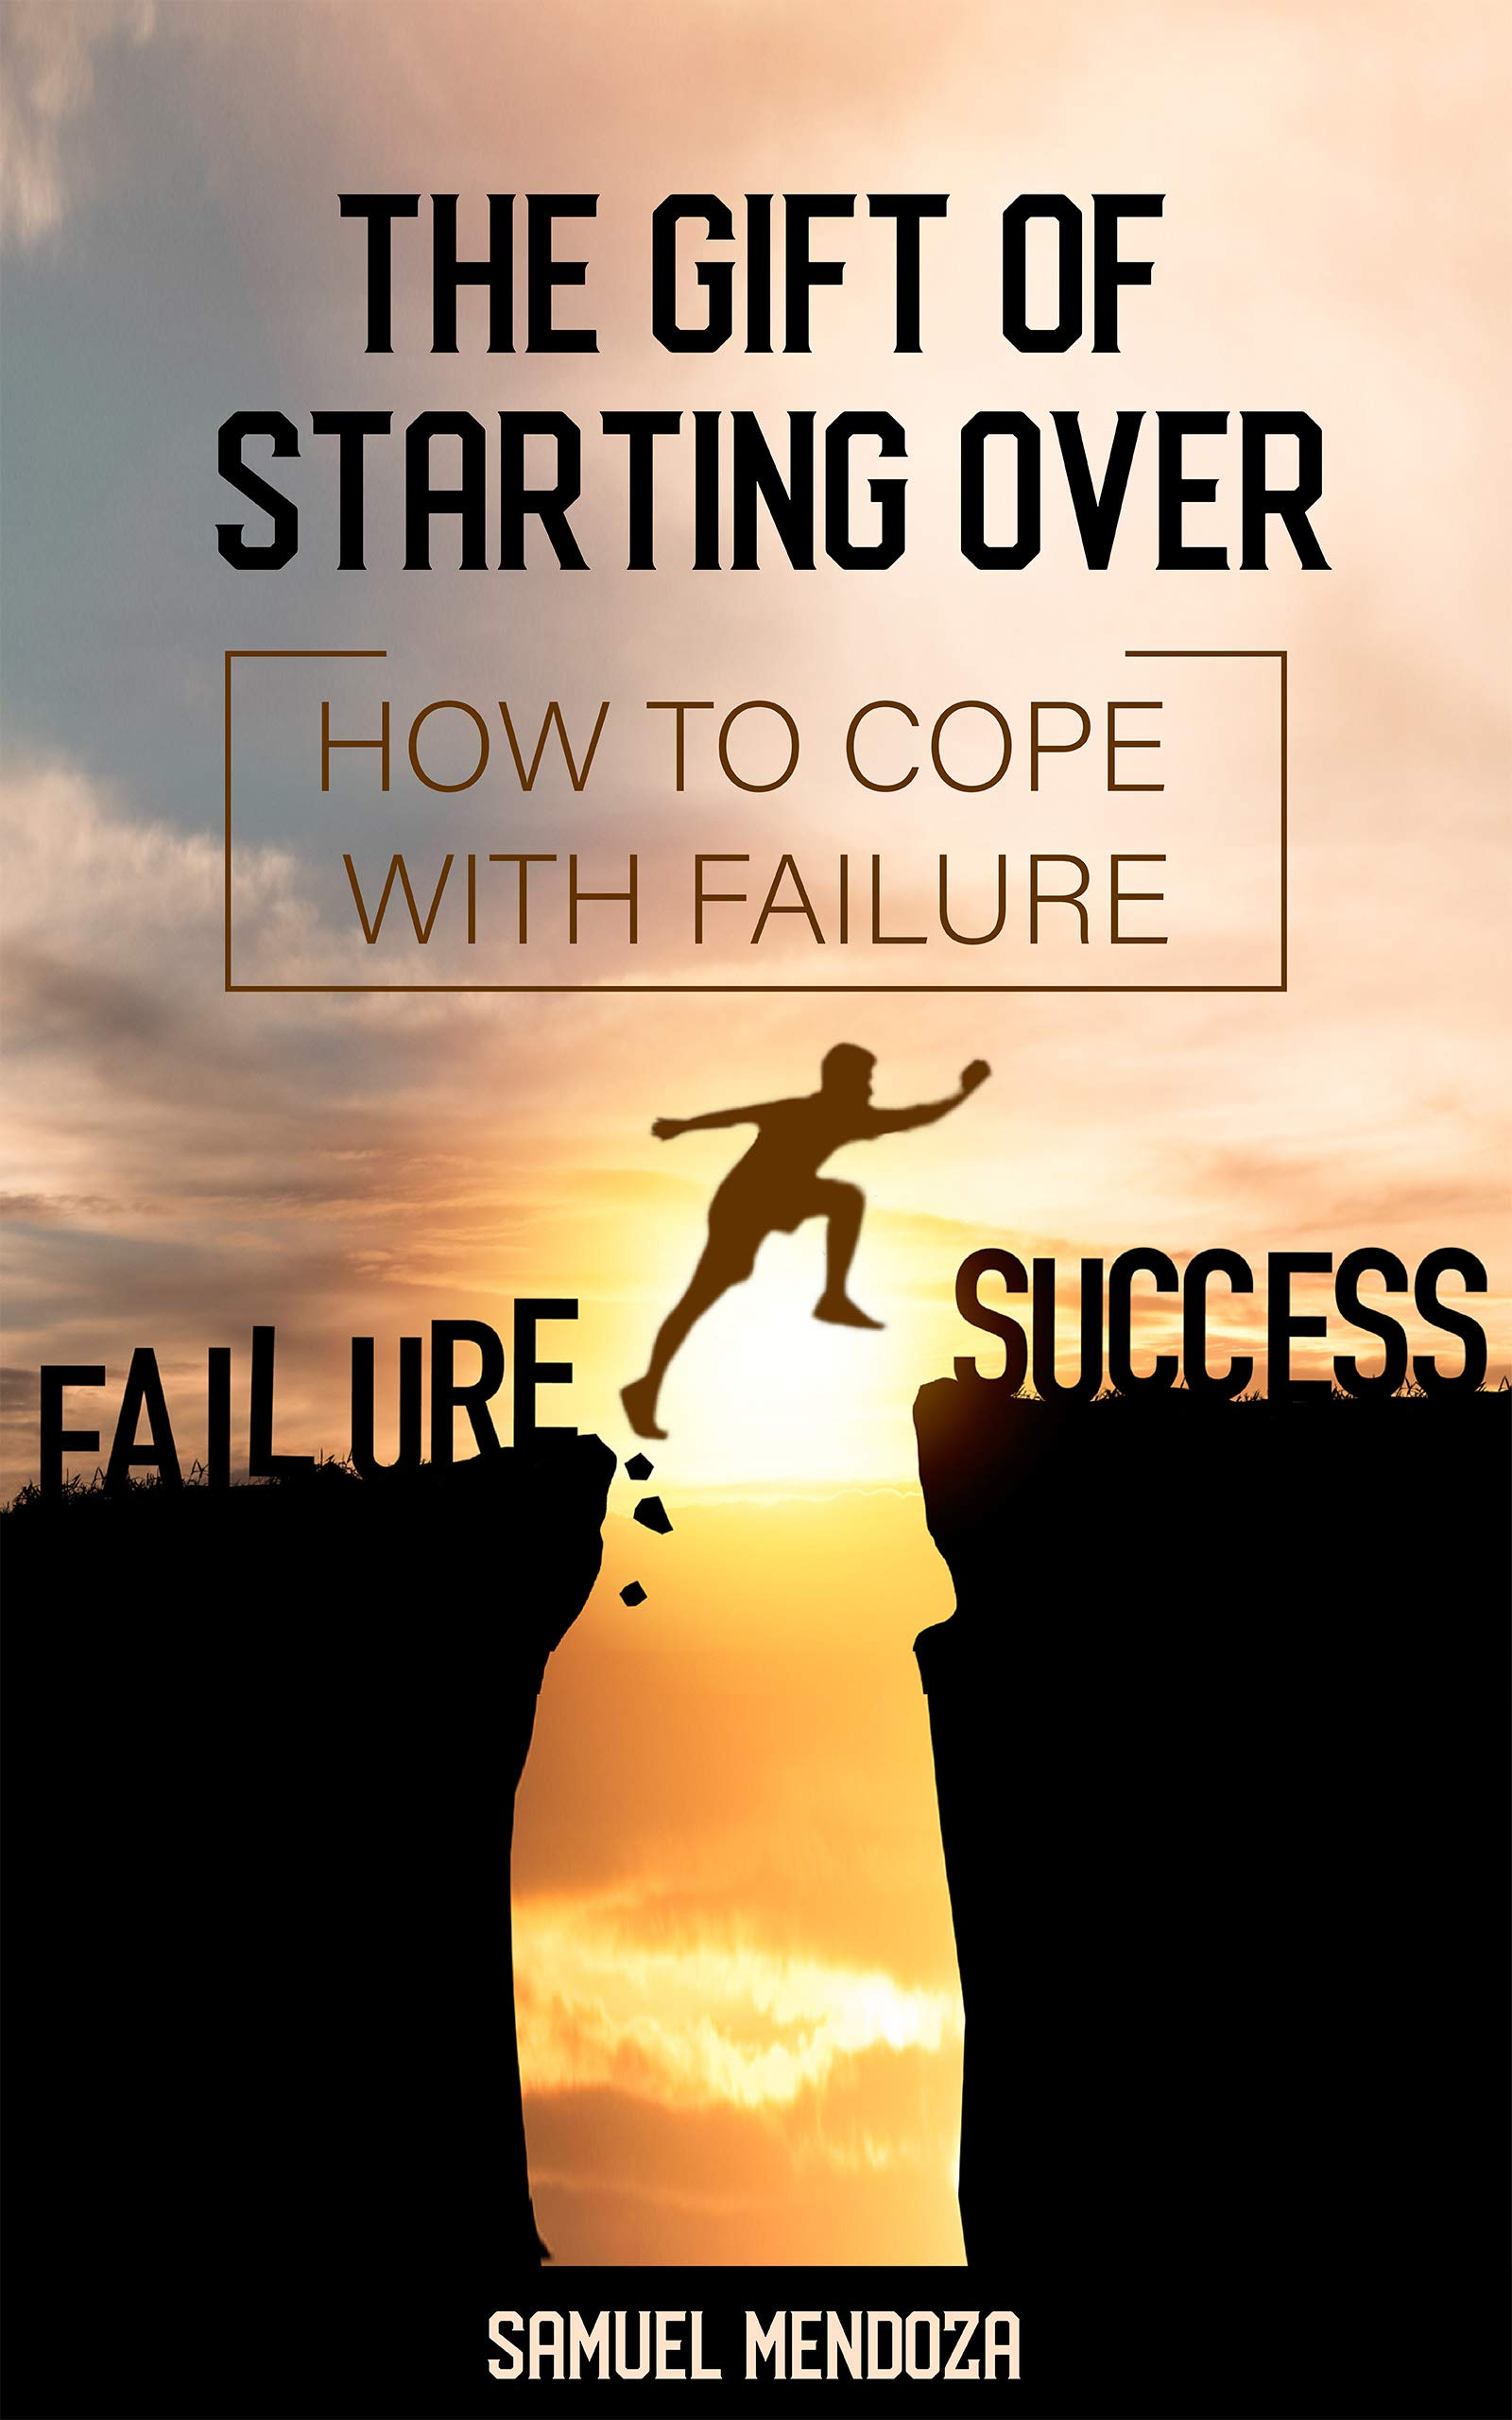 The Gift Of Starting Over: How to cope and overcome failure or depression